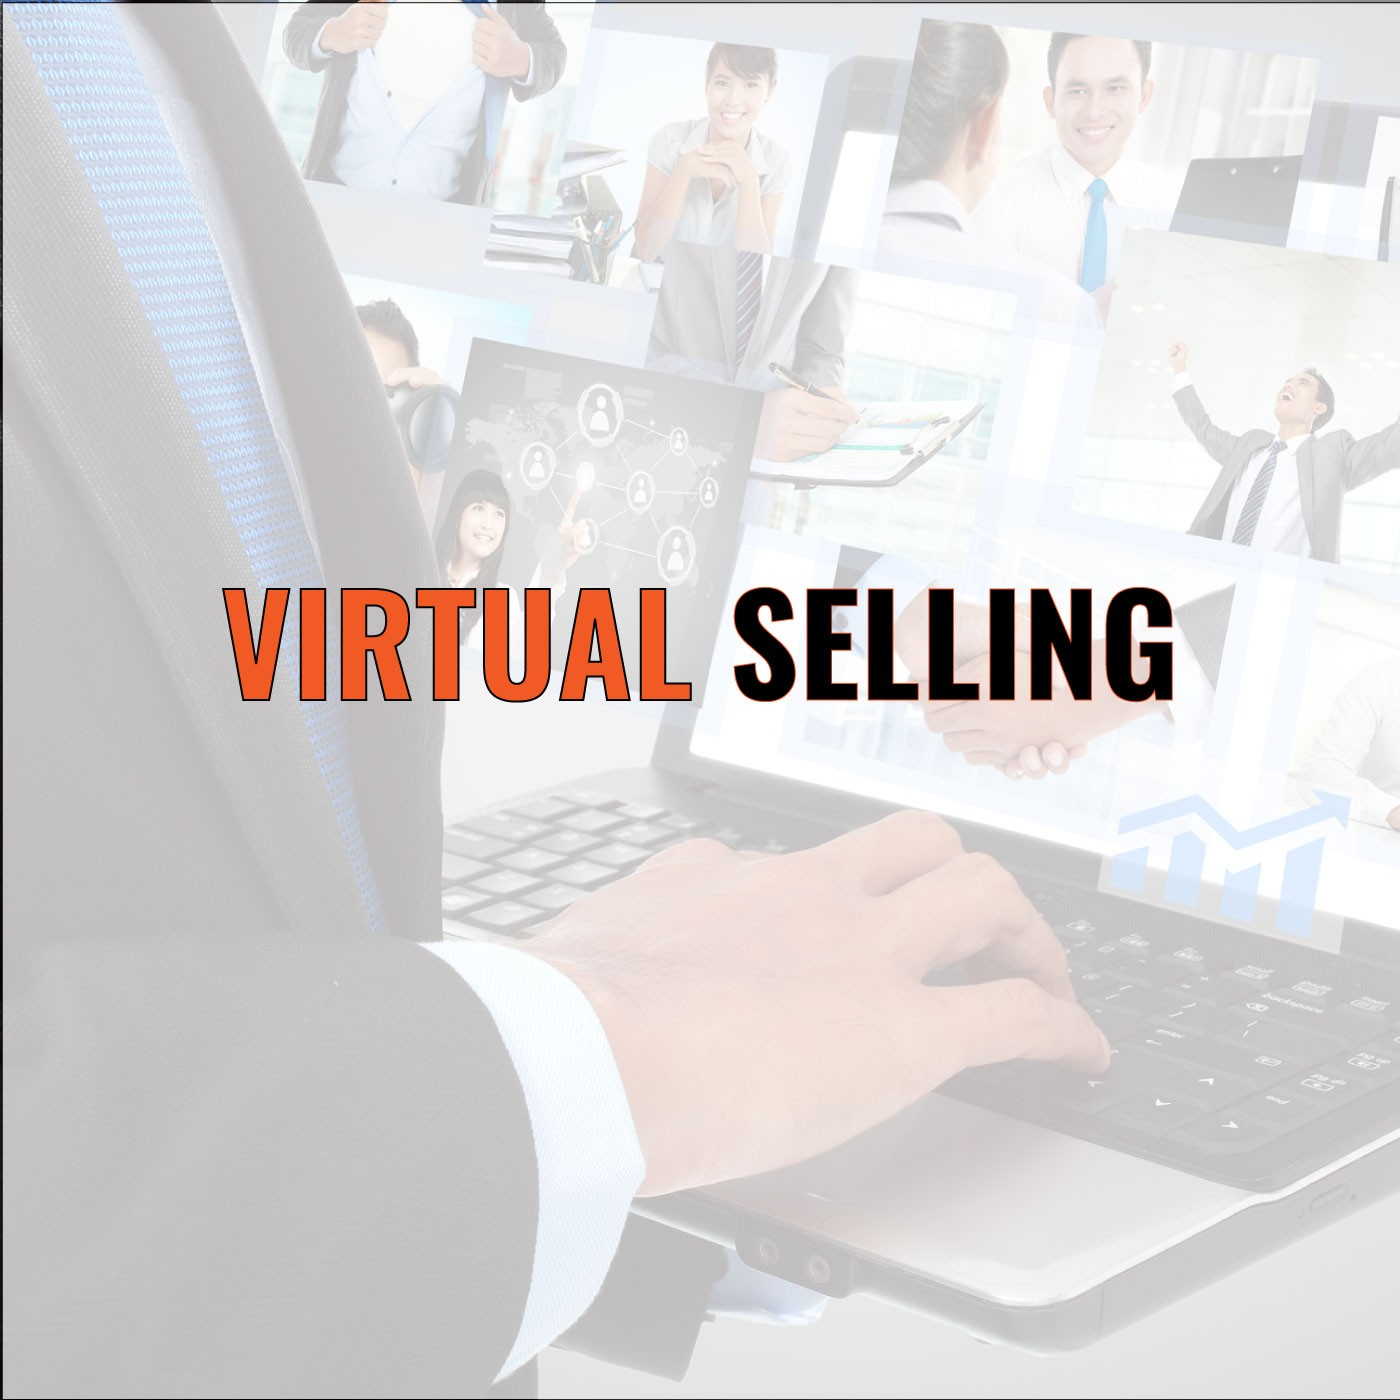 Sean Campbell on Virtual Selling